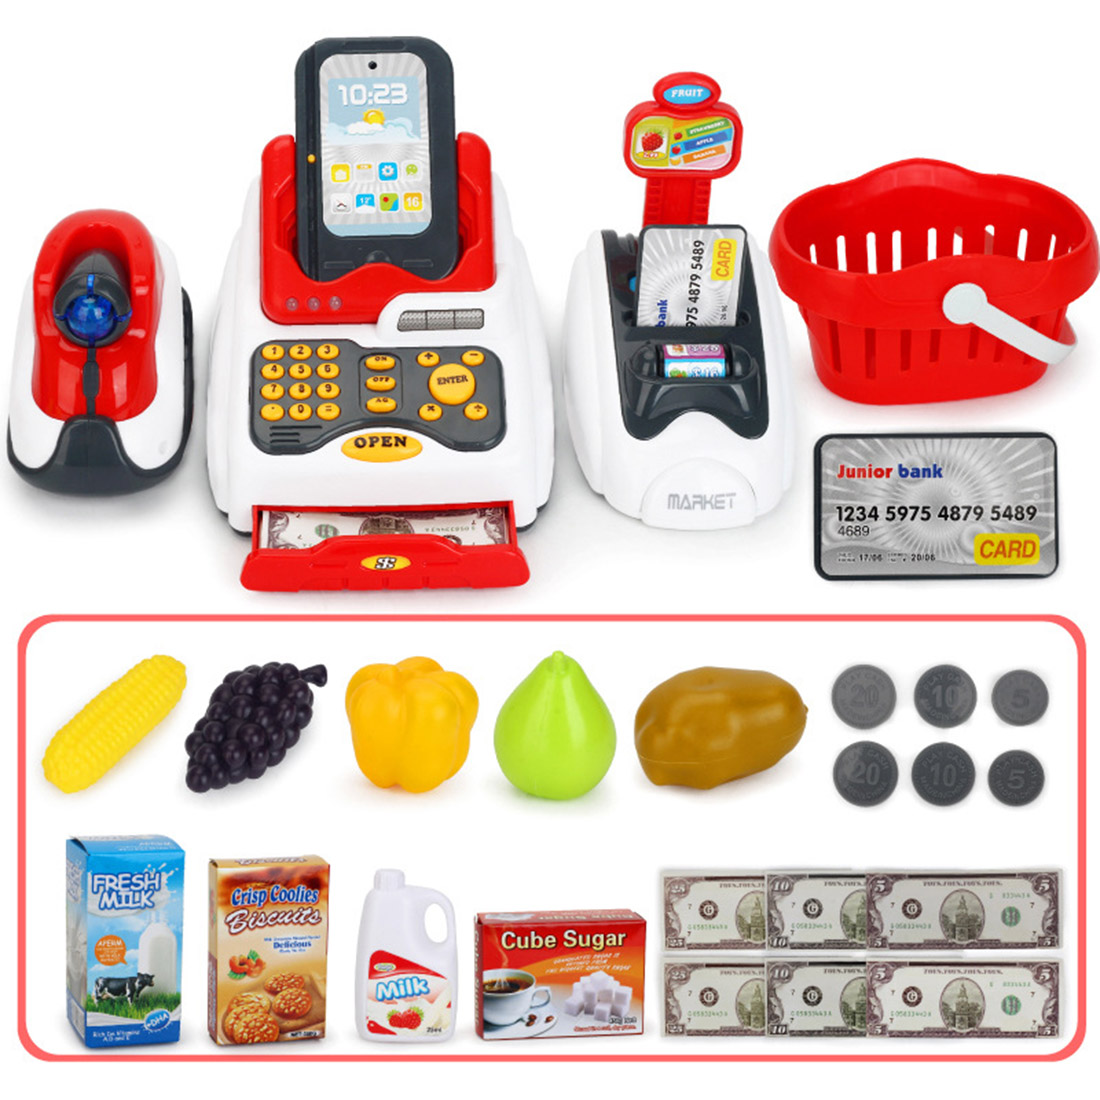 Rowsfire Lovely Children Pretend Play Toys Classic Supermarket Cash Register Toy for Children Cute Pattern Design Lahore